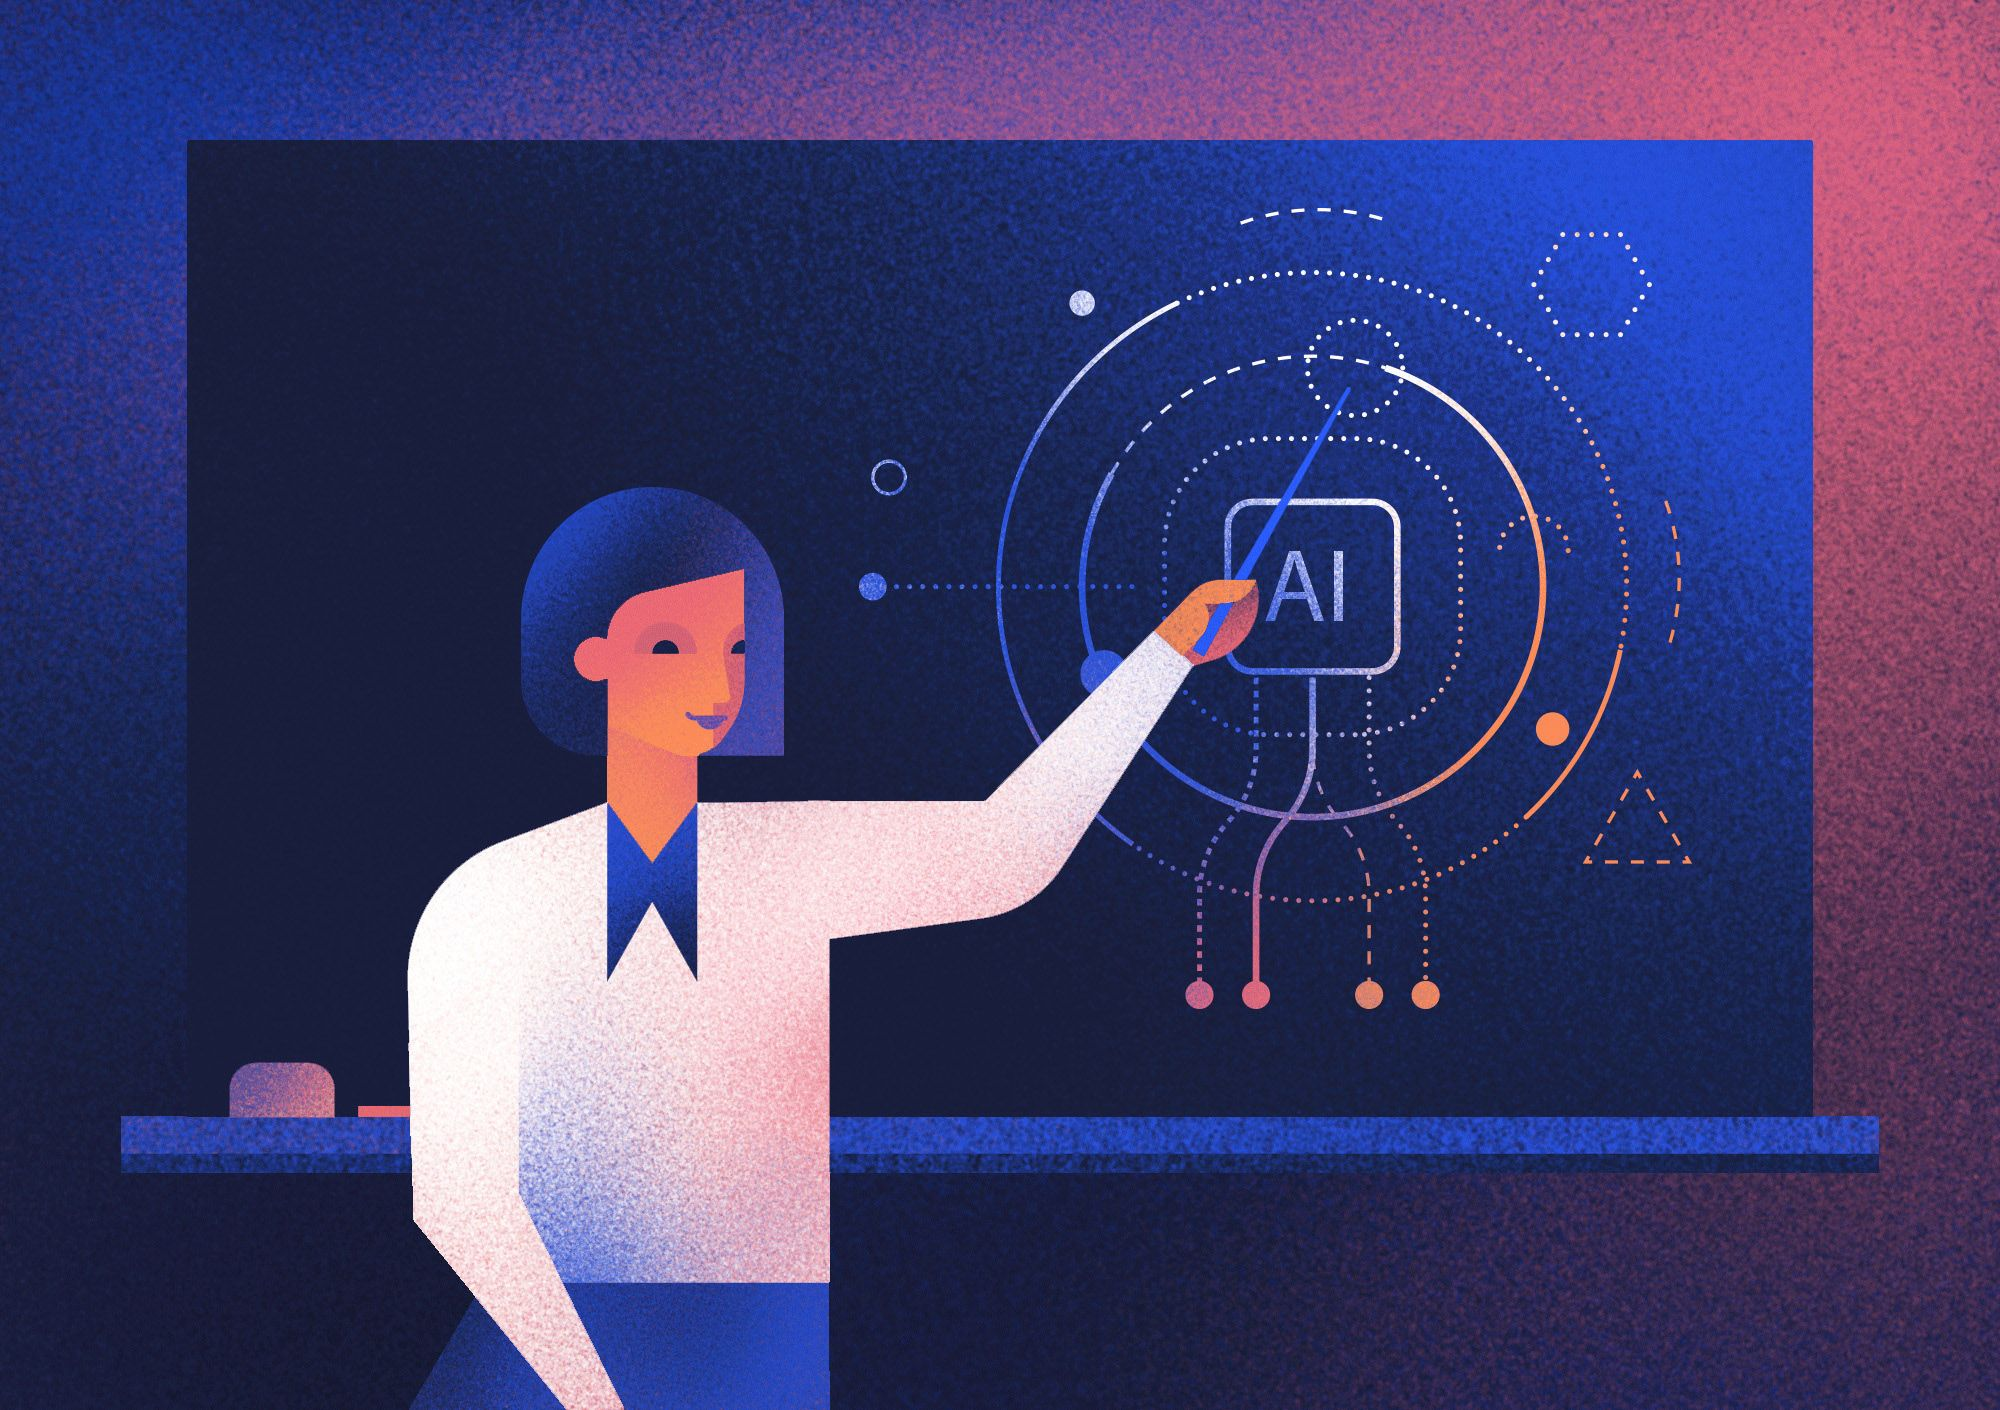 Transparent collaboration is one of the key factors building trust between Artificial Intelligence and doctors. Illustration by Aga Więckowska.